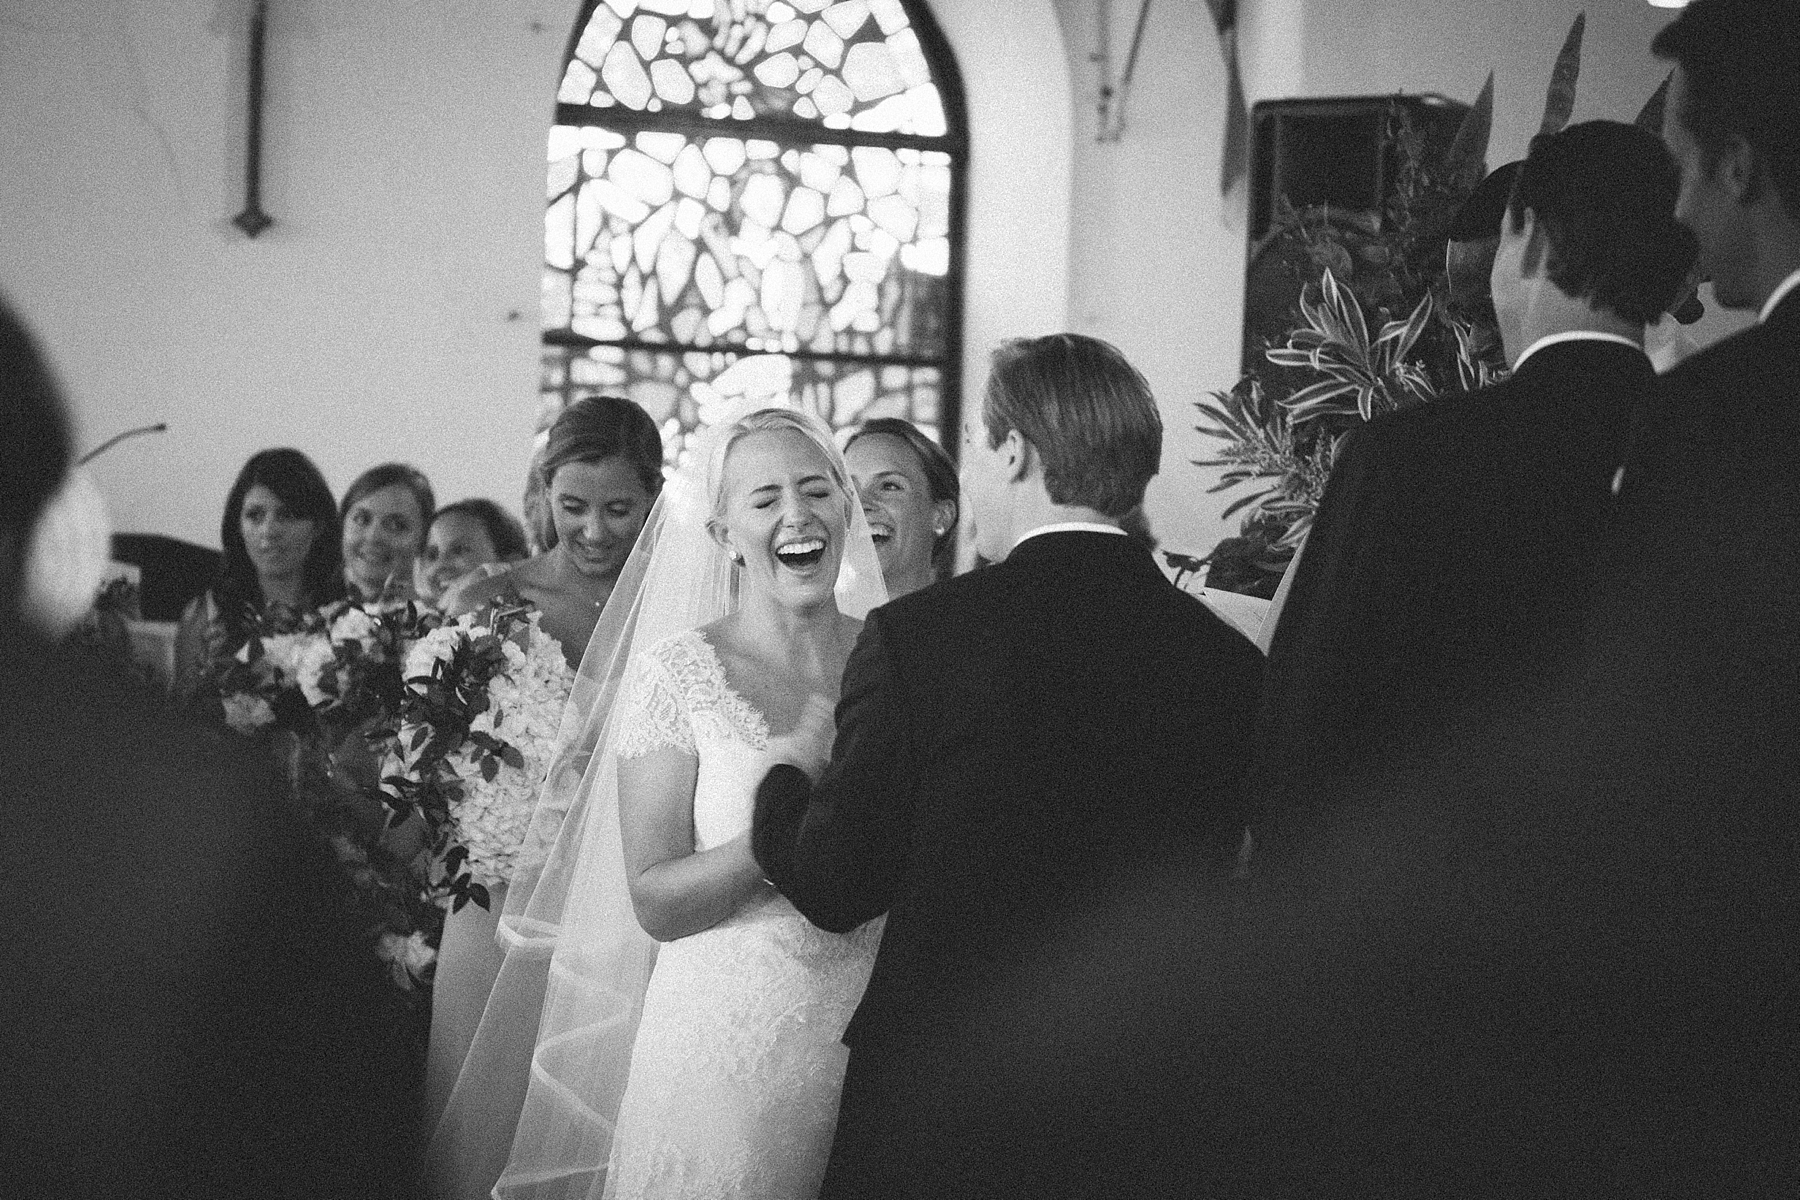 briland-wedding-photographer-harbour-island-bahamas_0021.jpg